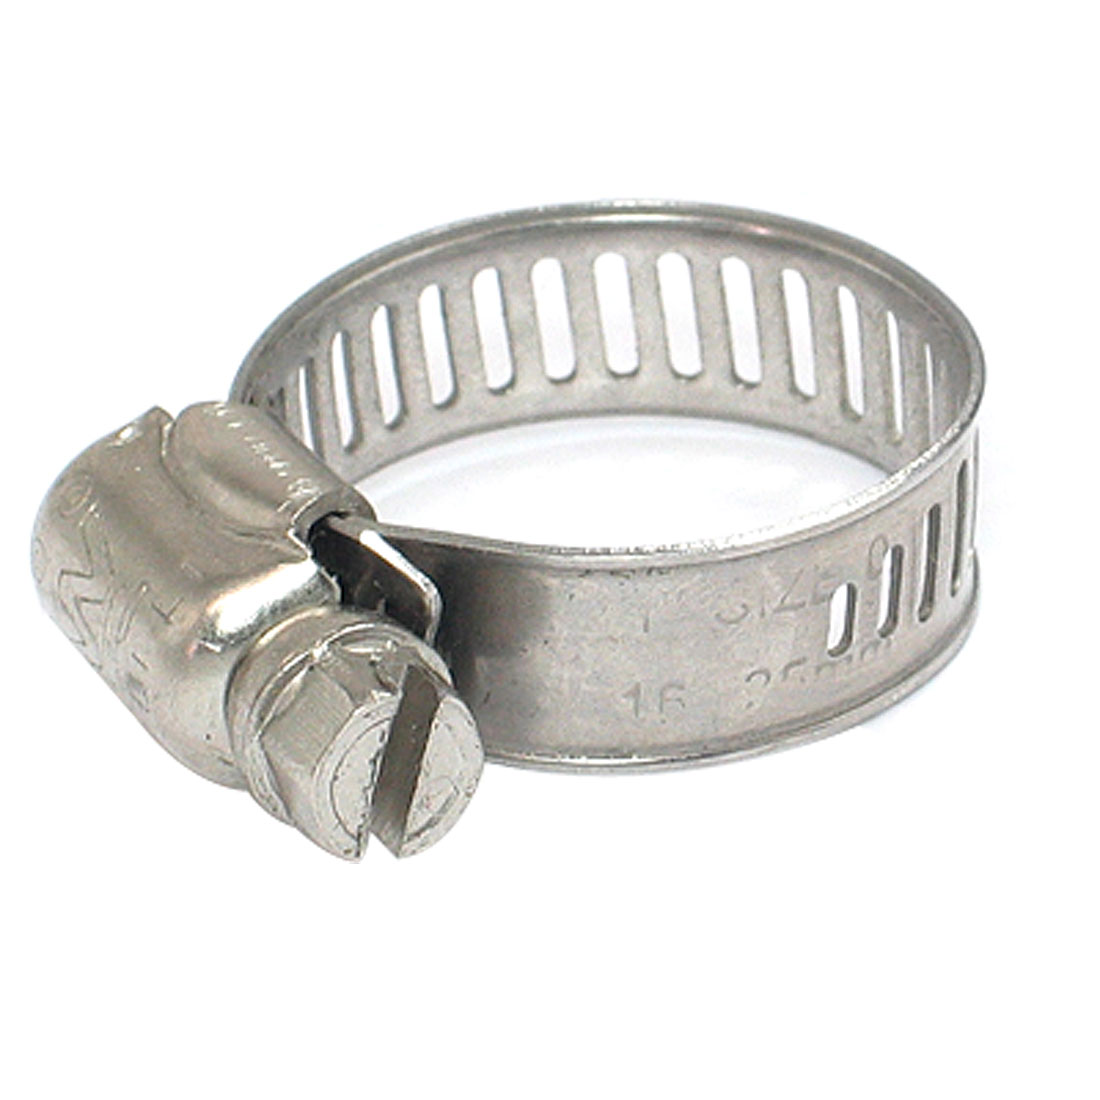 "16-25mm Hose Pipe Clamp Hoop Silver Tone 1"" Diameter 2pcs"